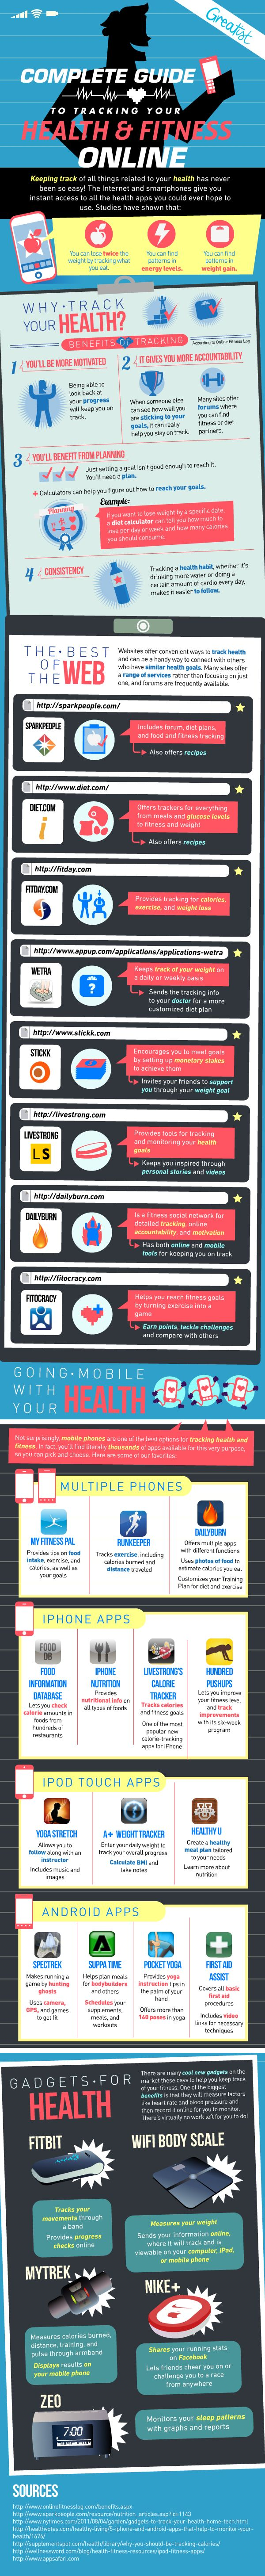 Complete guide to tracking your health and fitness online. Greatist.